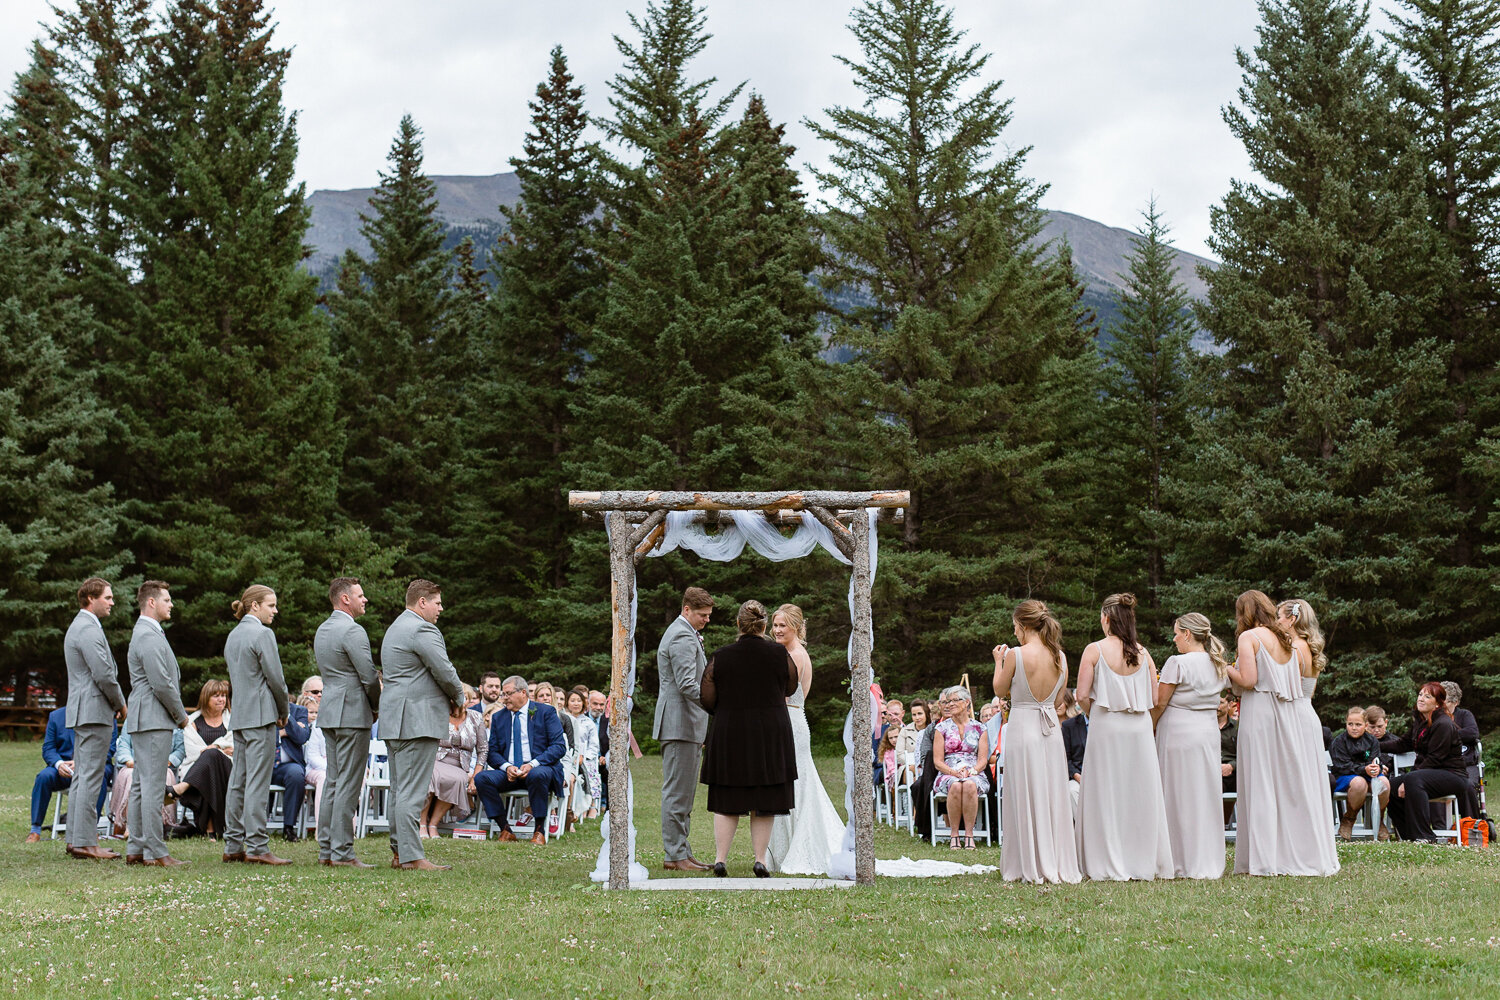 65-Canmore-Alberta-Real-Wedding-Best-Wedding-Photographers-82.JPG